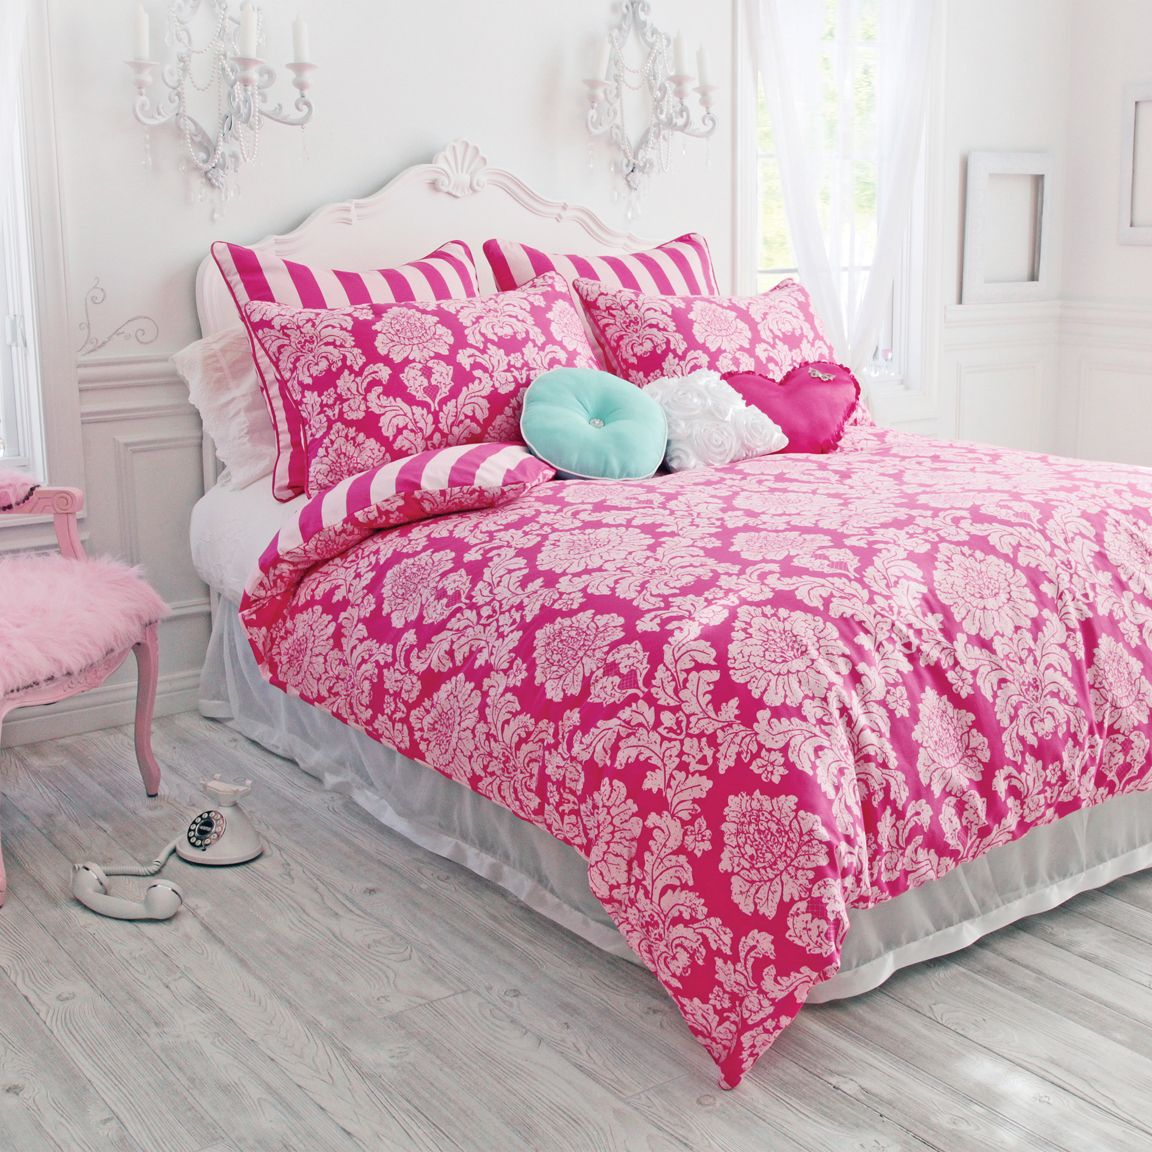 Pin By Wake Up Frankie On Wake Up Frankie Comforter Sets Damask Bedding Pink Bedding